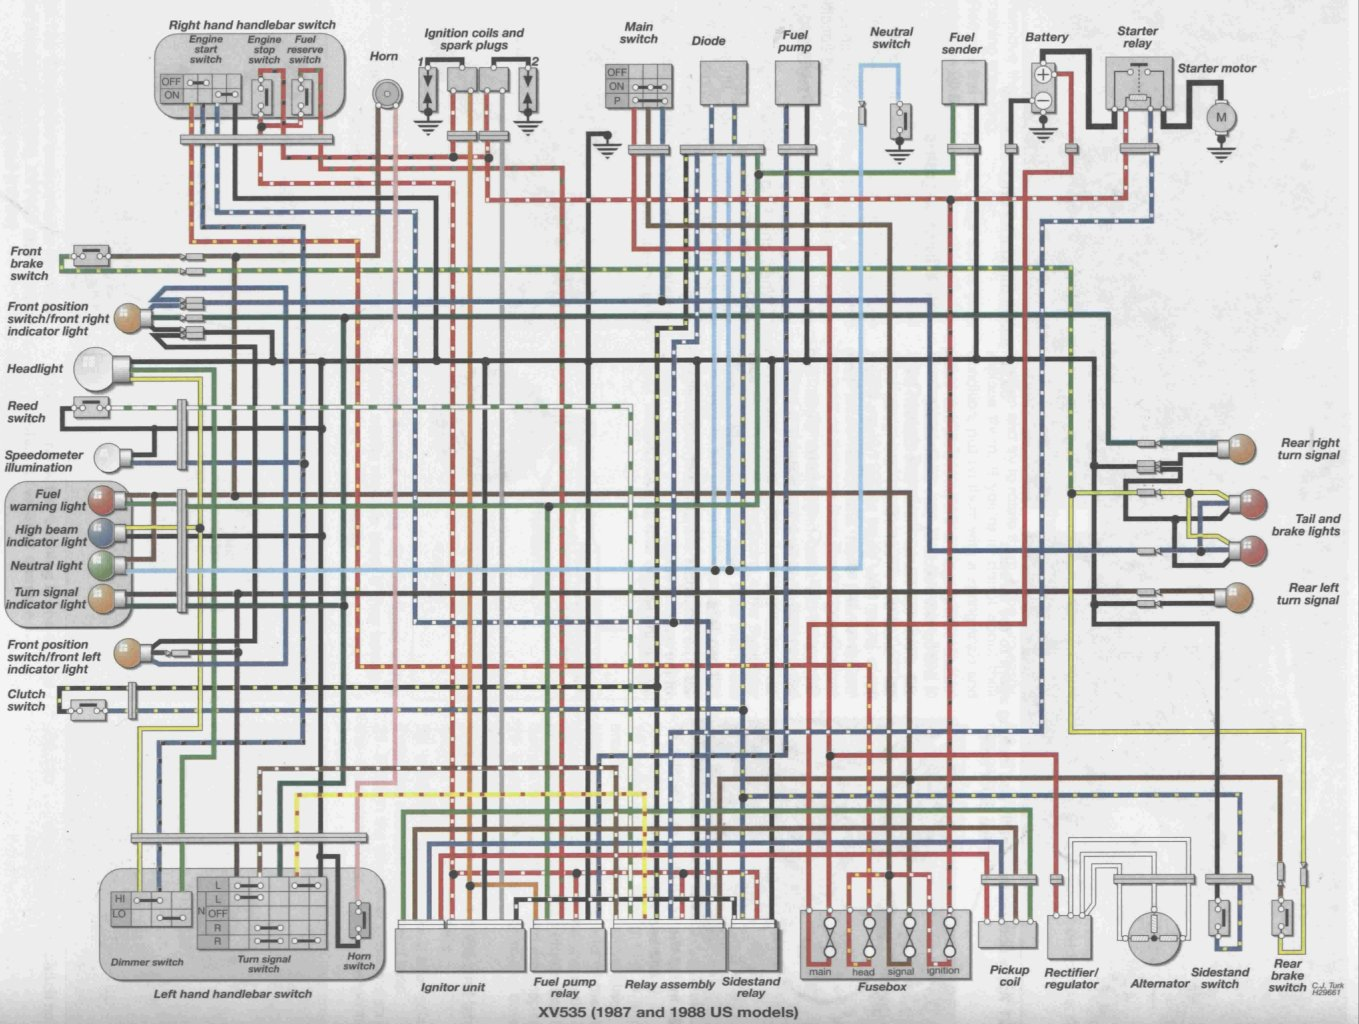 87_88_us_XV535 viragotechforum com \u2022 view topic wiring ending a line 1987 535 Wiring Harness Diagram at gsmportal.co